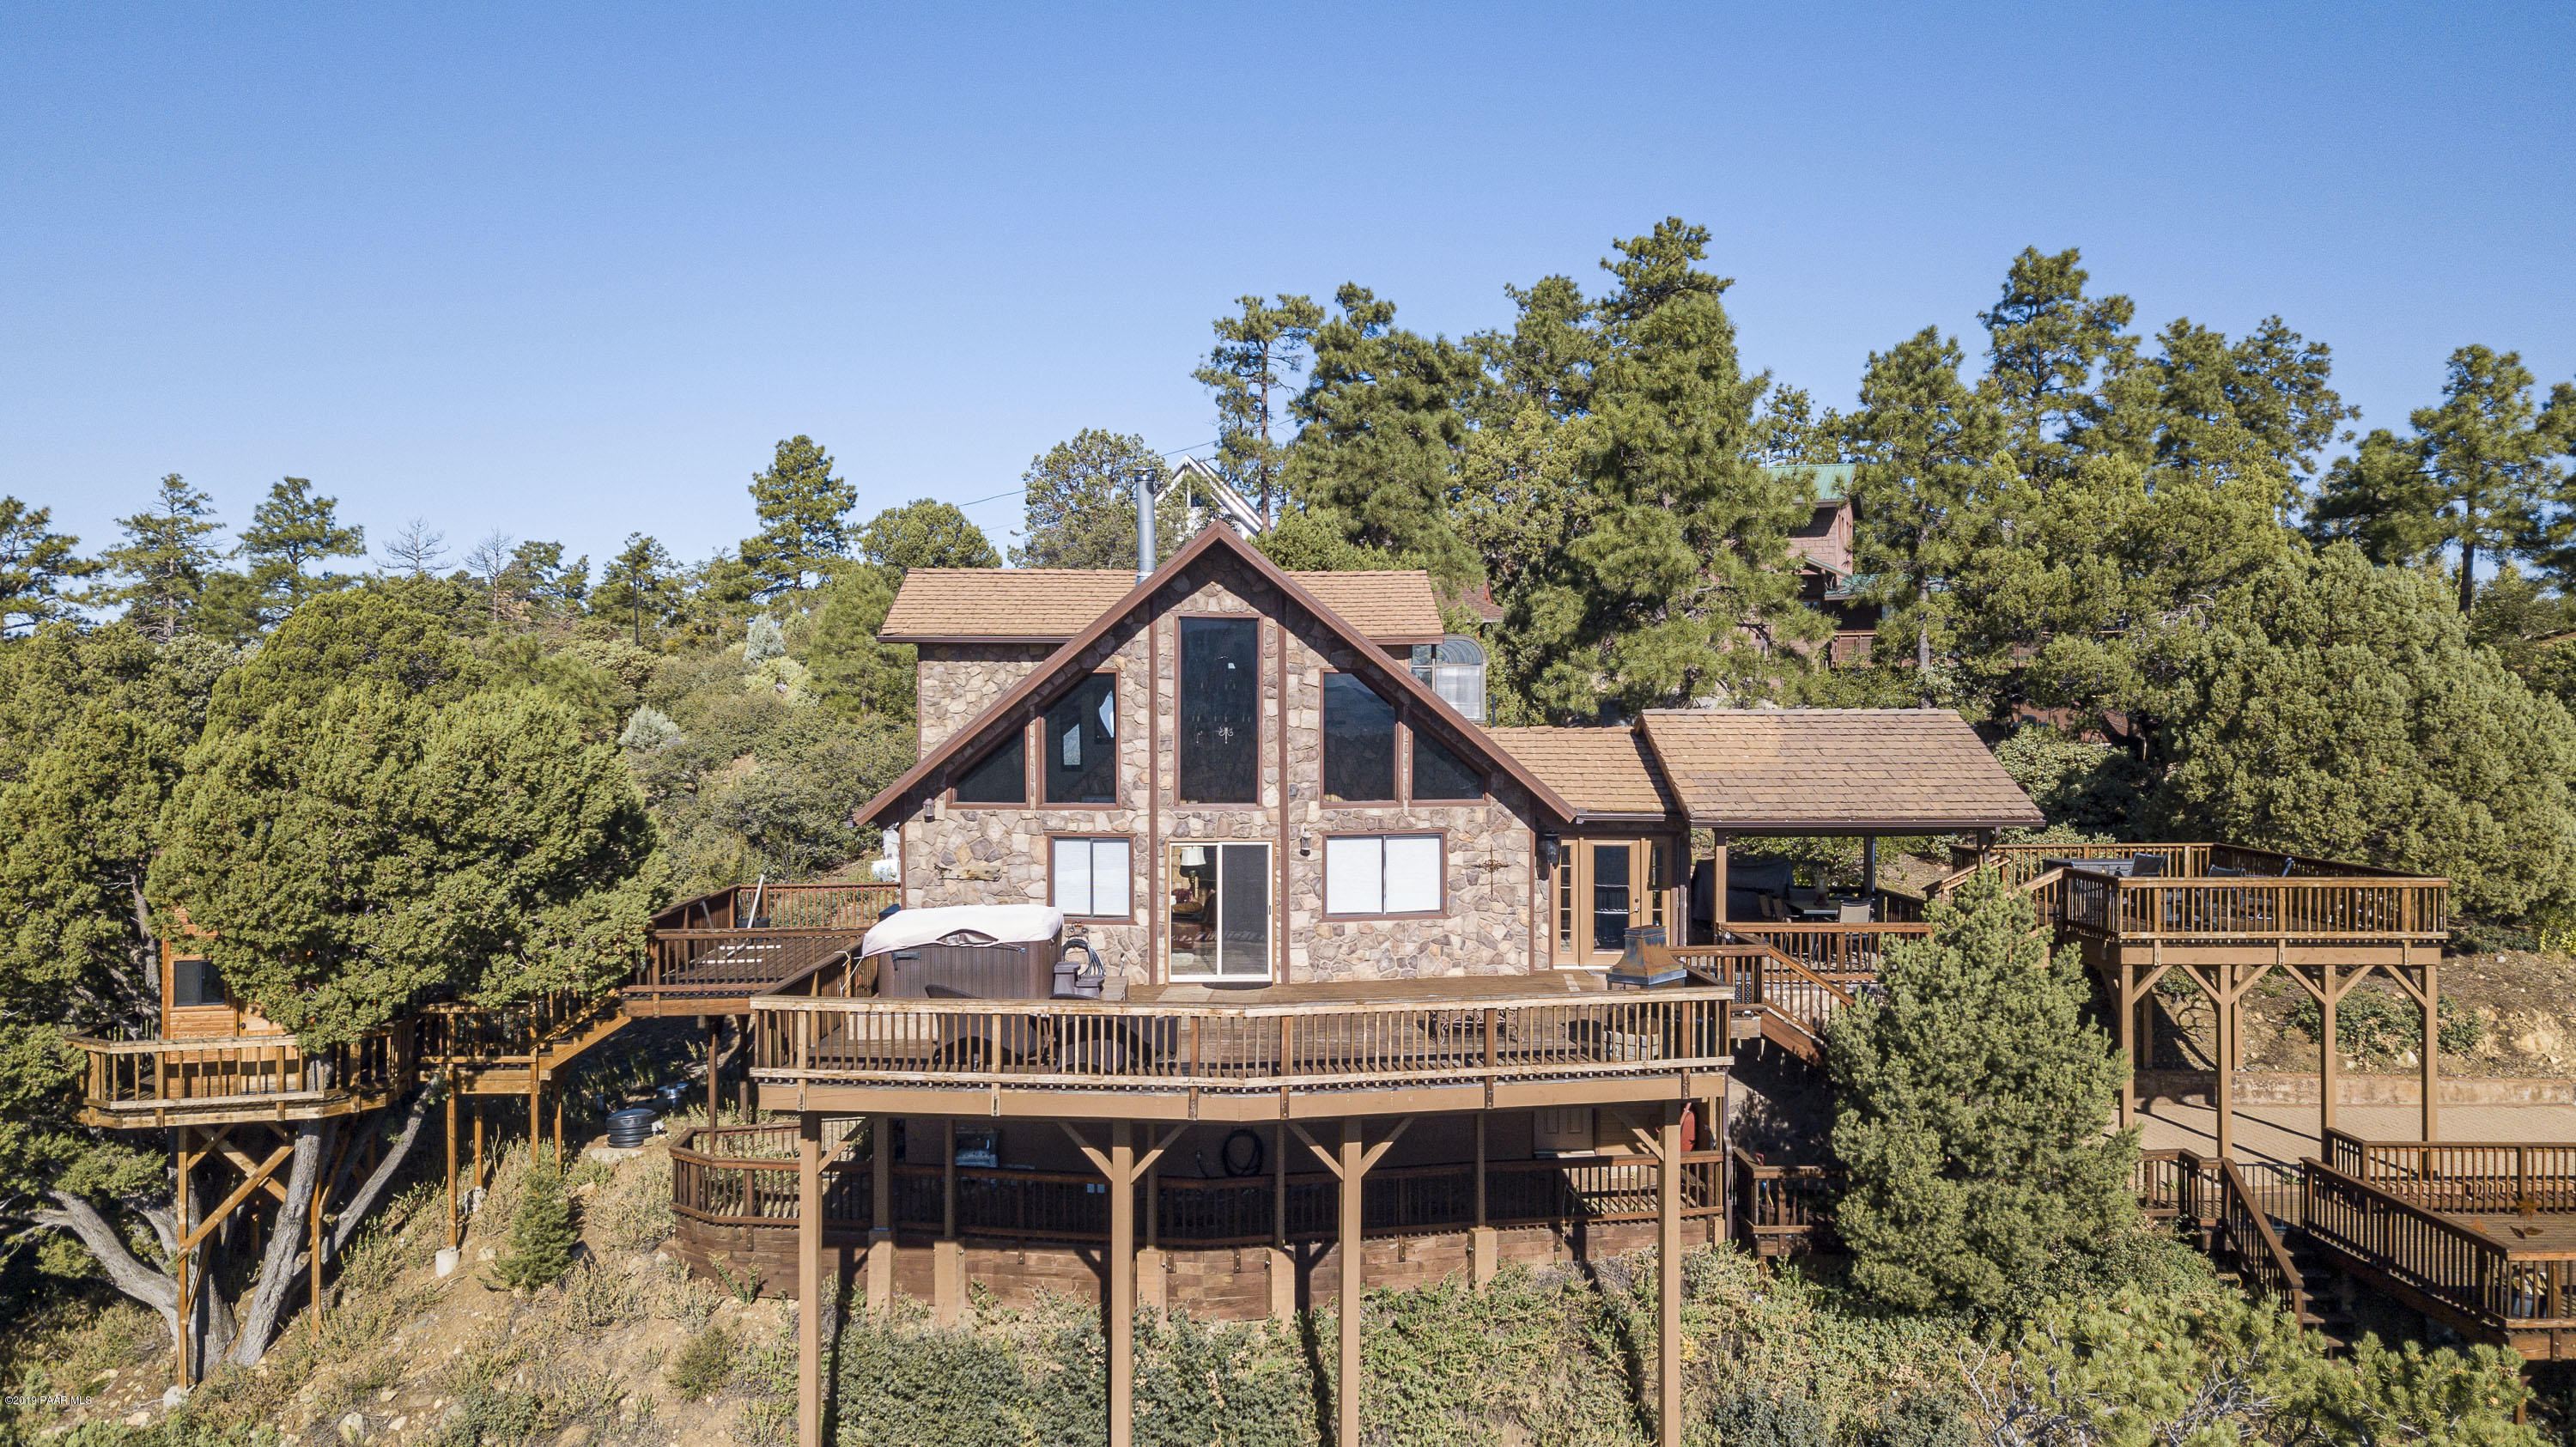 755 N Valley View Drive, Prescott in Yavapai County, AZ 86305 Home for Sale